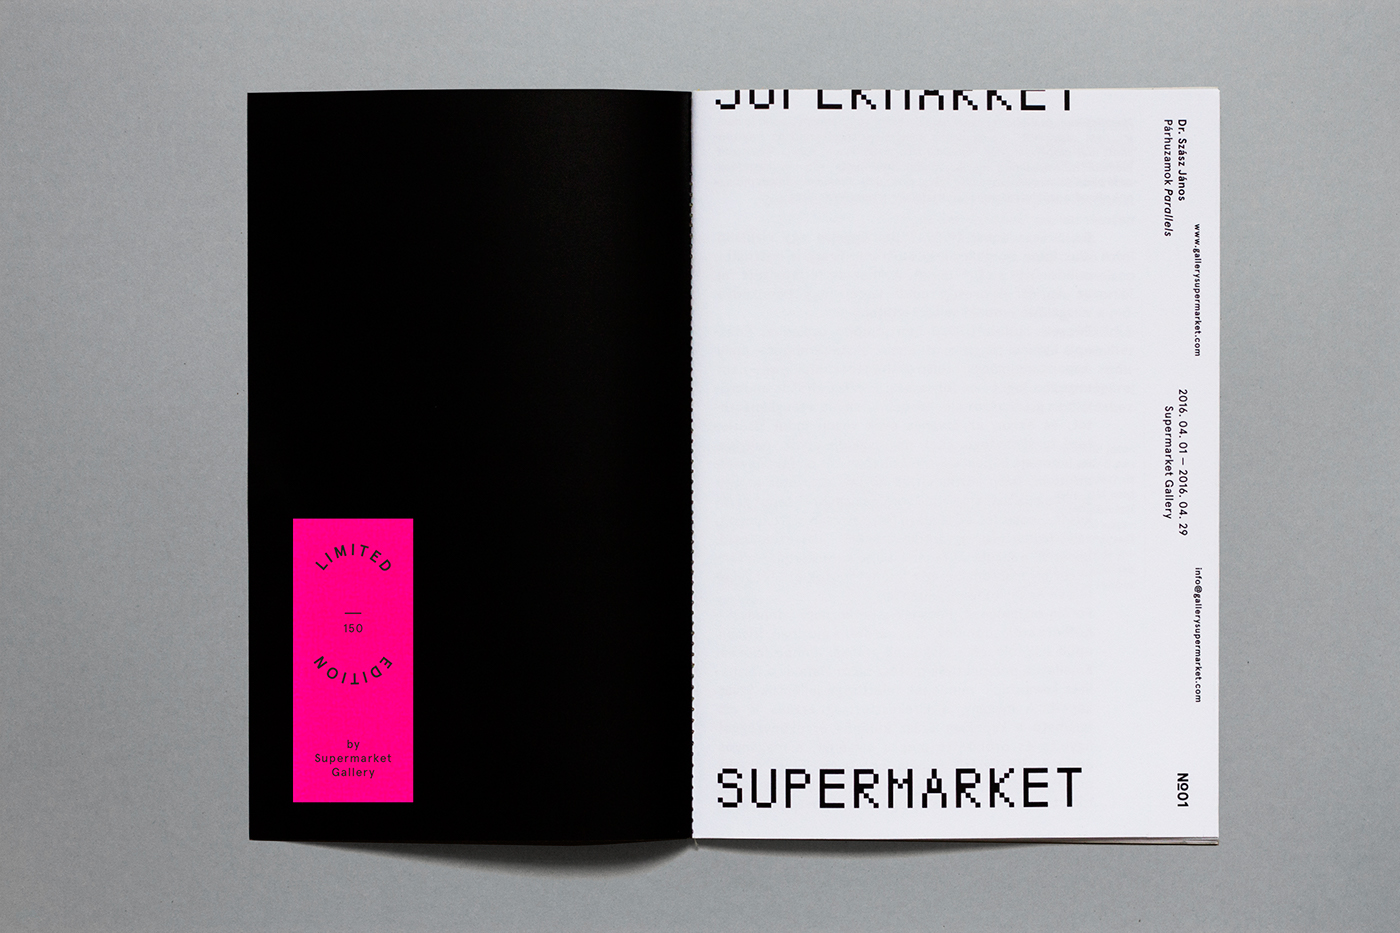 Supermarket gallery budapest contemporary contemporary photography vintage photography artist book art dealing Exhibition